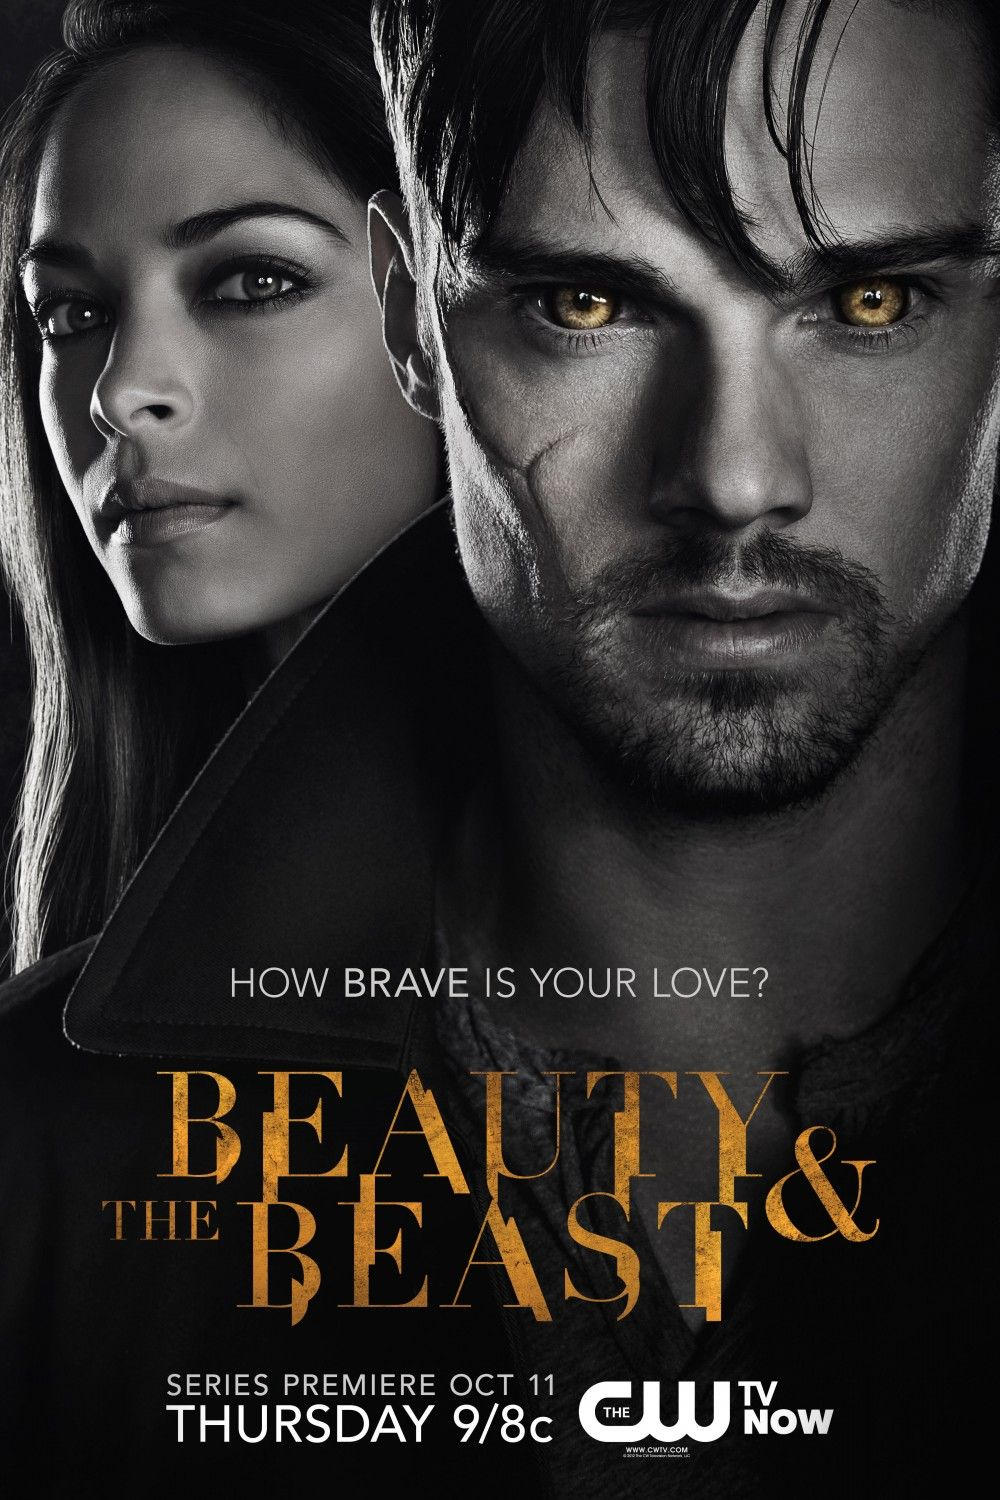 Beauty and the Beast S01 480p WEB-DL NhaNc3